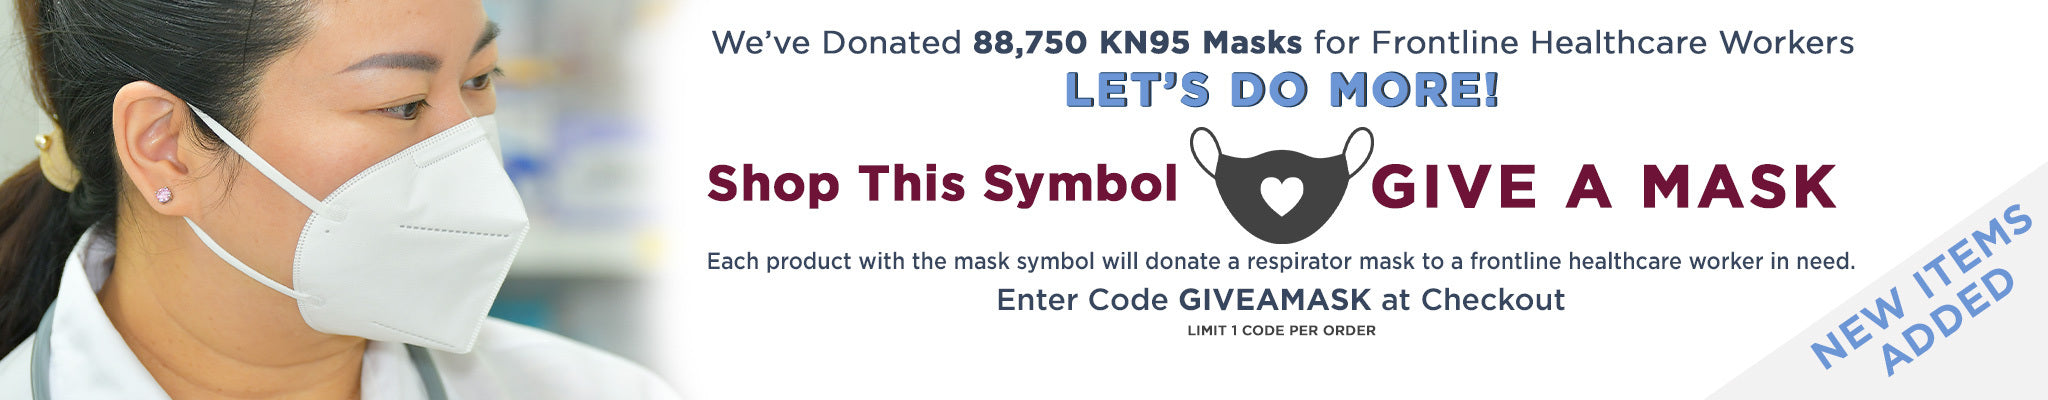 Buy 1, Give a Mask with code GIVEAMASK